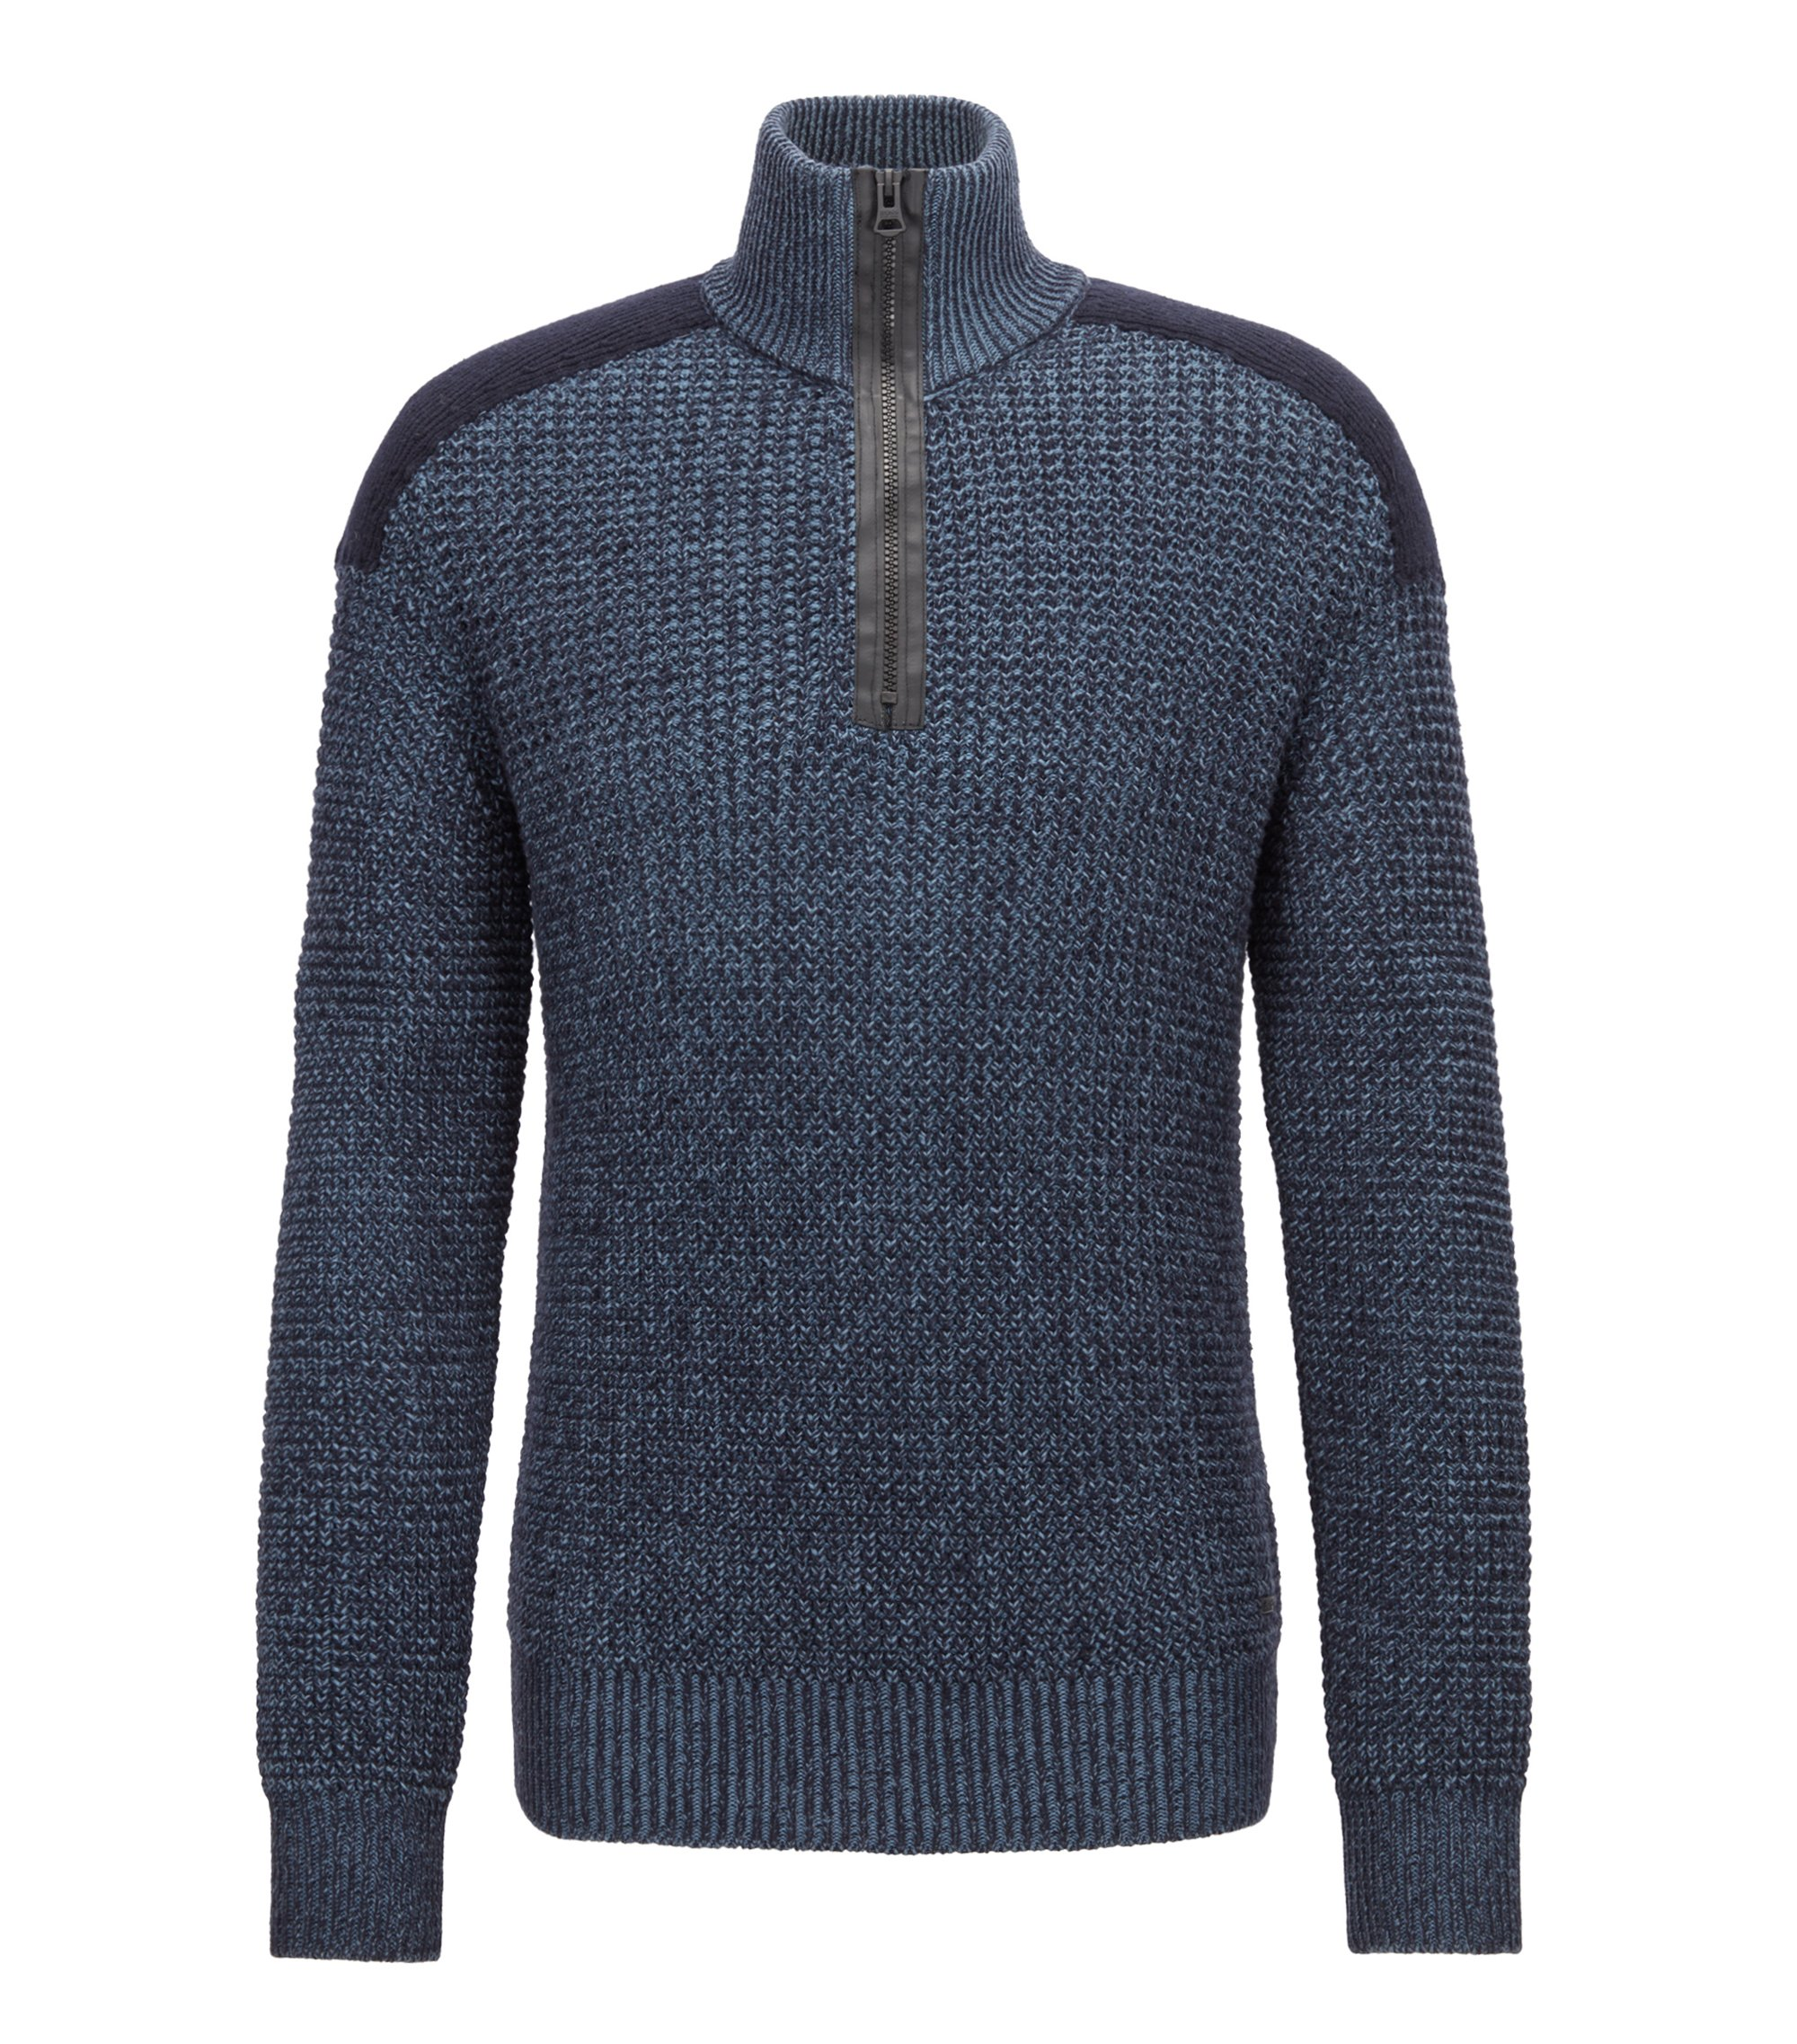 Knitted zip-neck sweater with contrast shoulder patch, Dark Blue